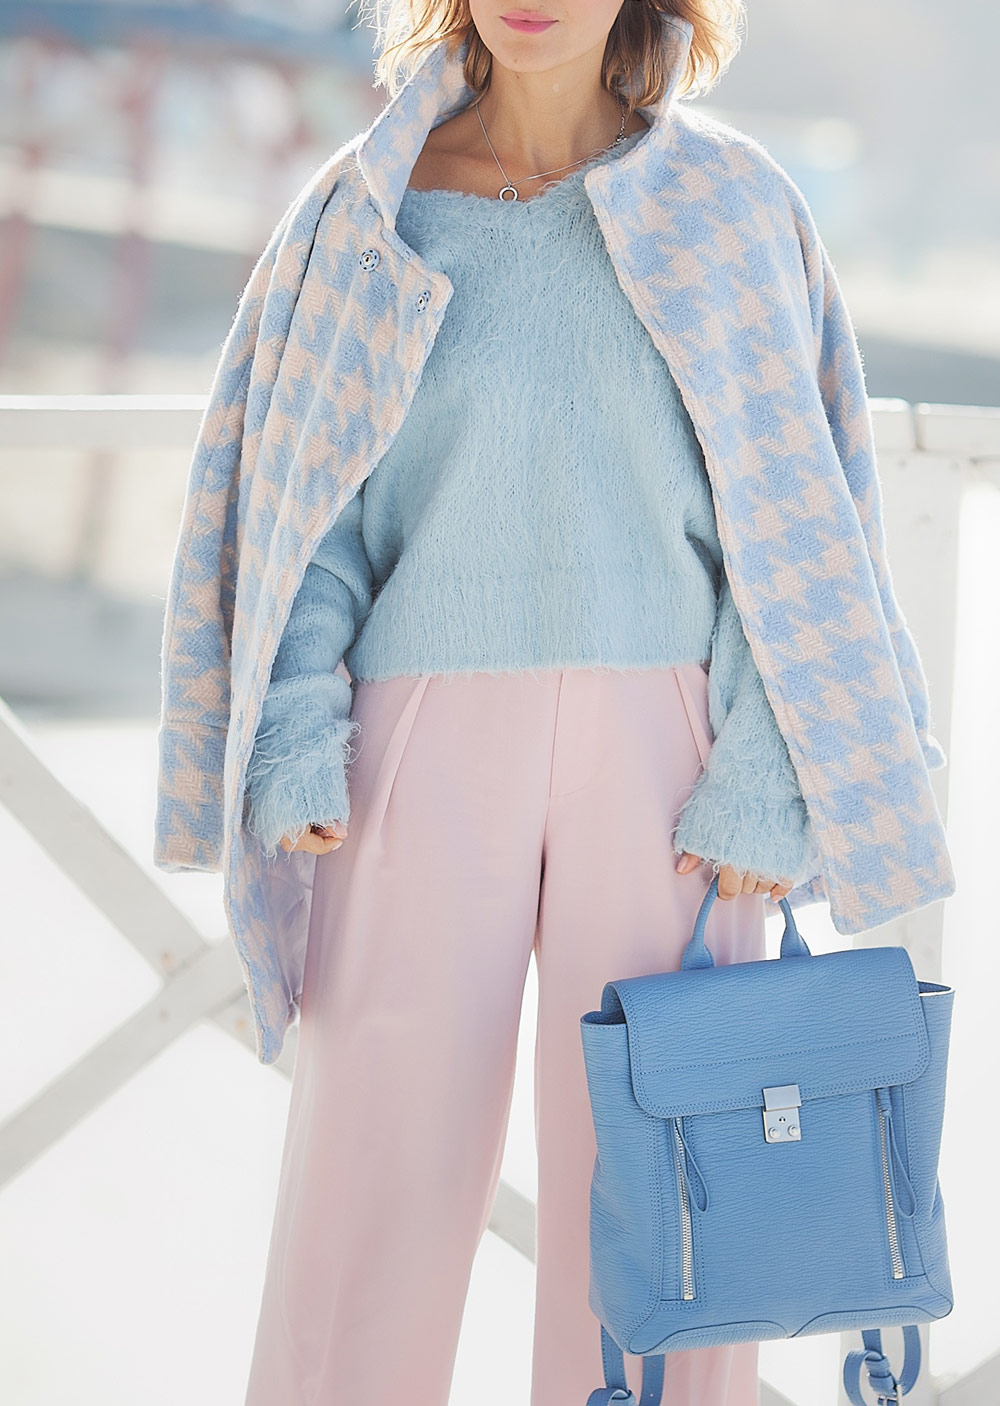 pastel-mix-for-autumn-outfit